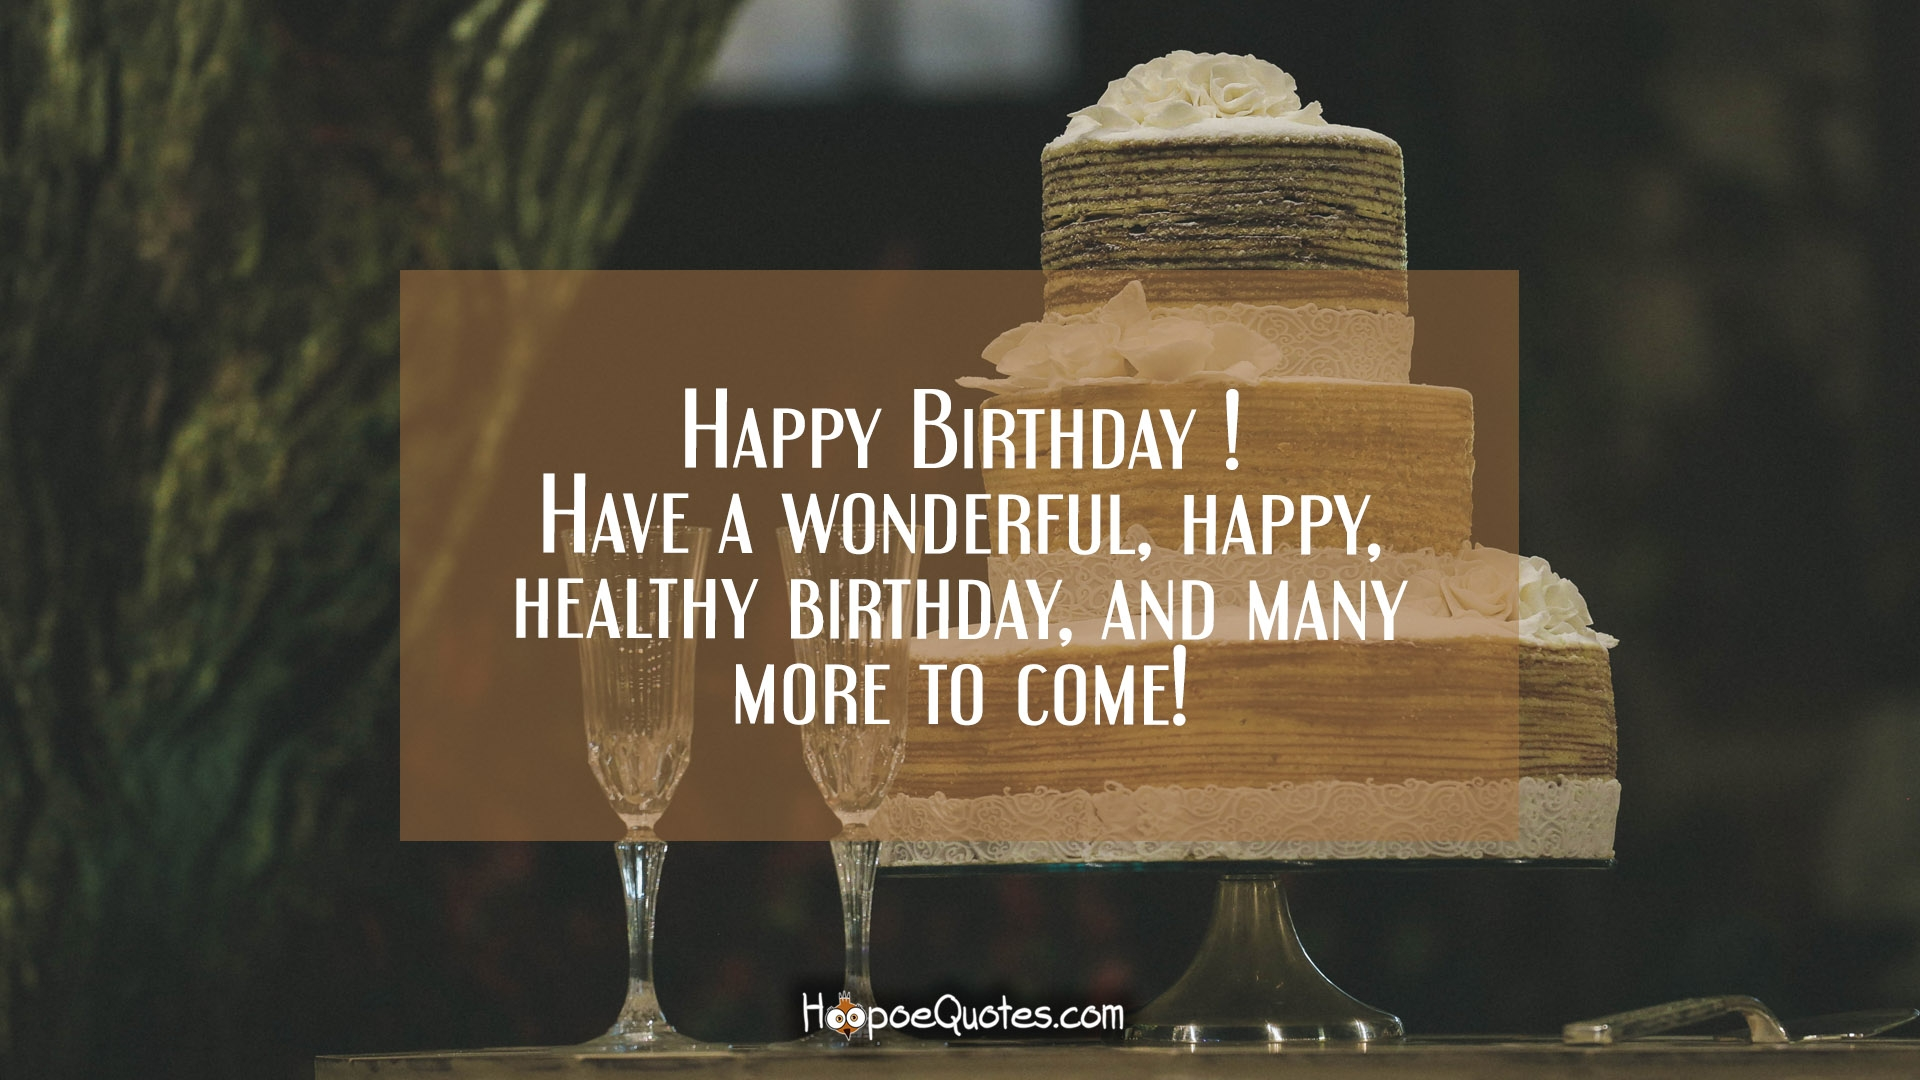 Happy Birthday Have A Wonderful Happy Healthy Birthday And Many More To Come HoopoeQuotes